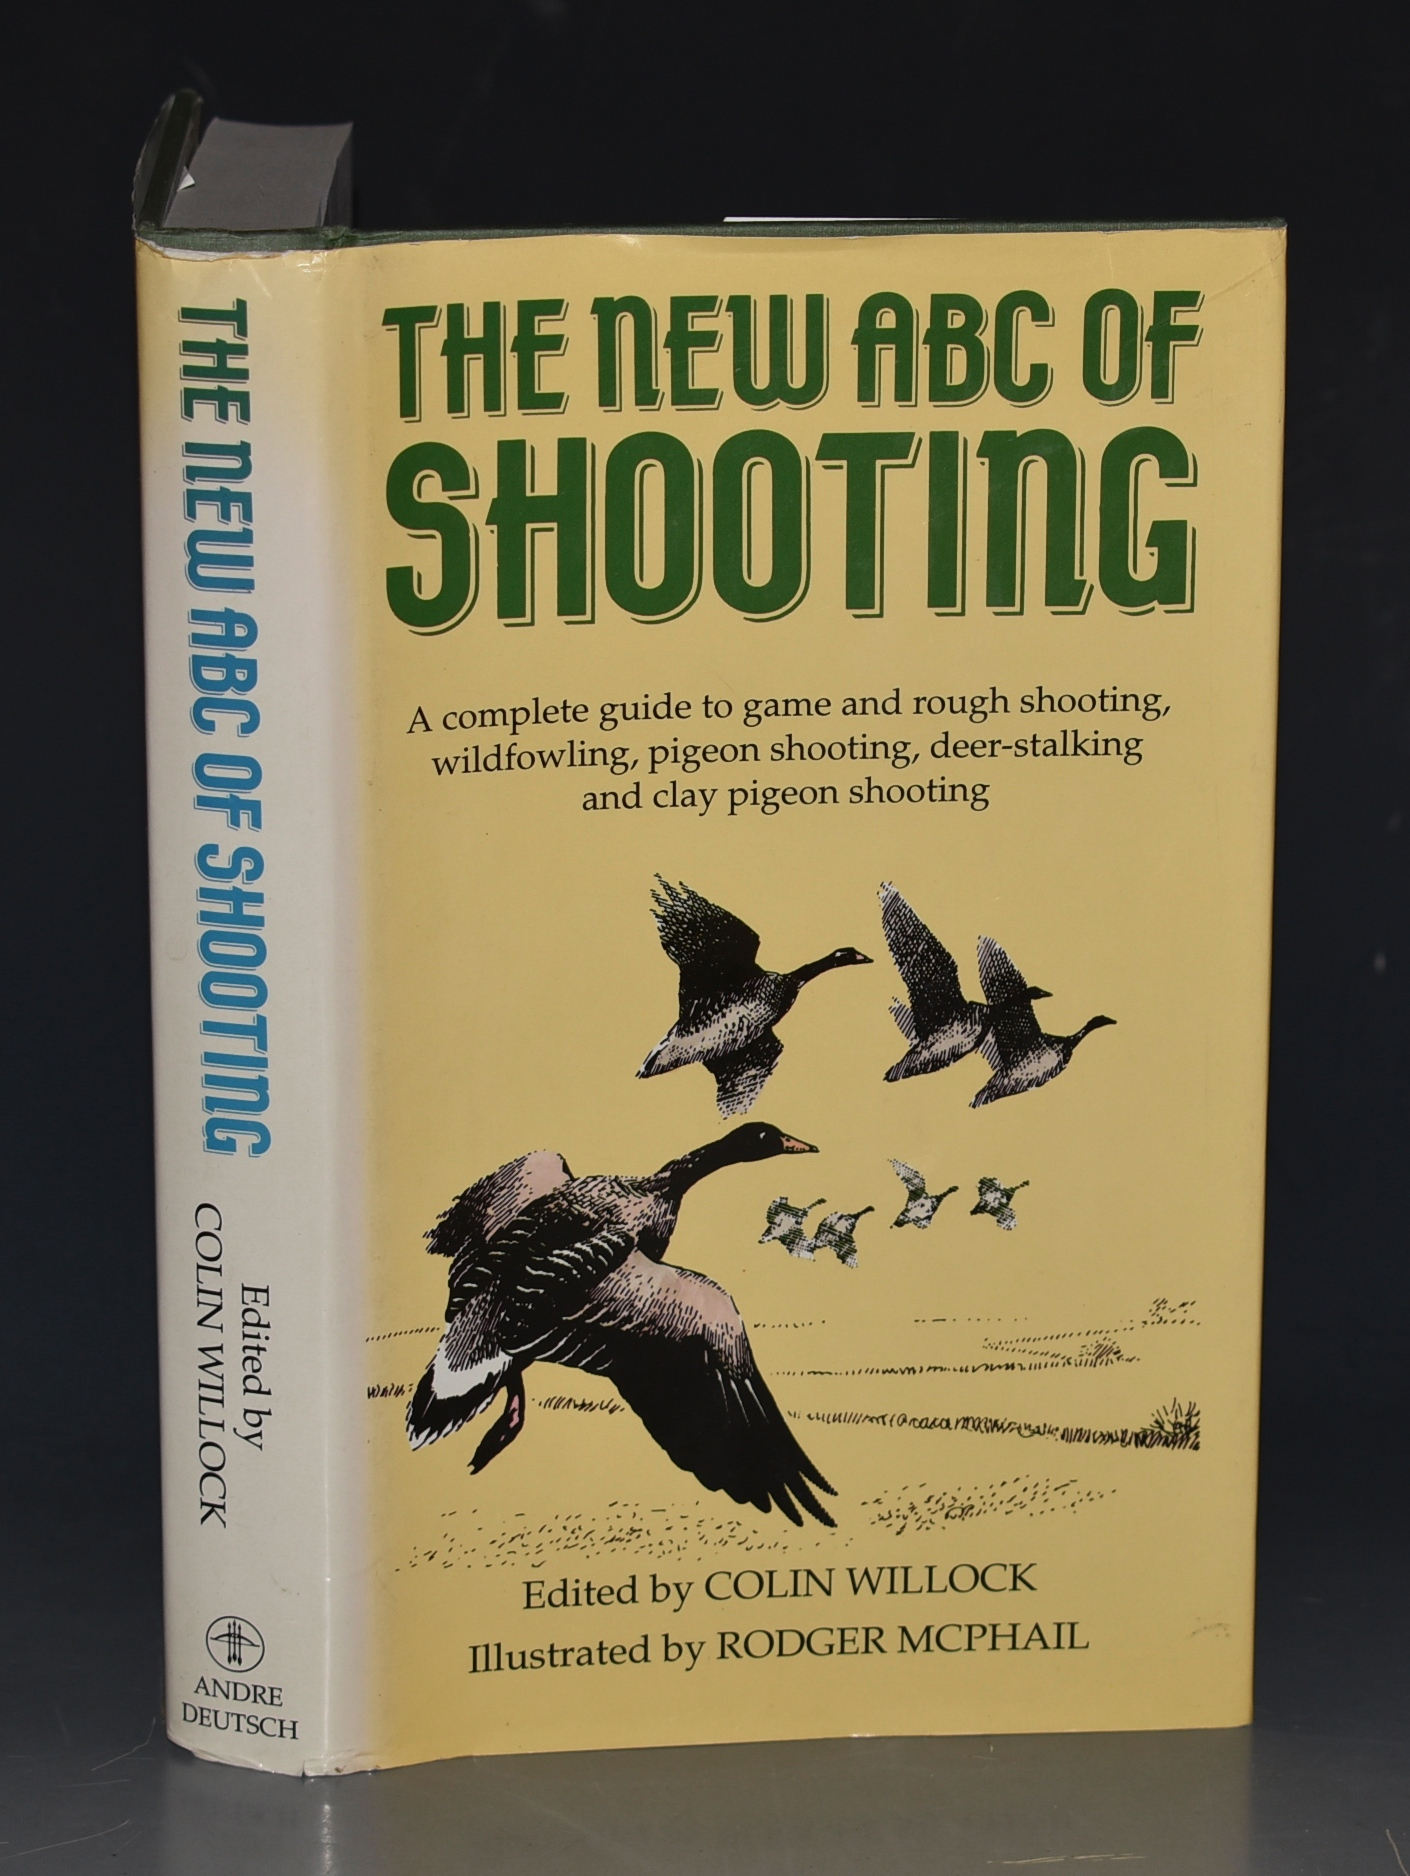 Image for The New ABC of Shooting. A complete guide to game and rough shooting, wild fowling, pigeon shooting, deer stalking and clay pigeon shooting.